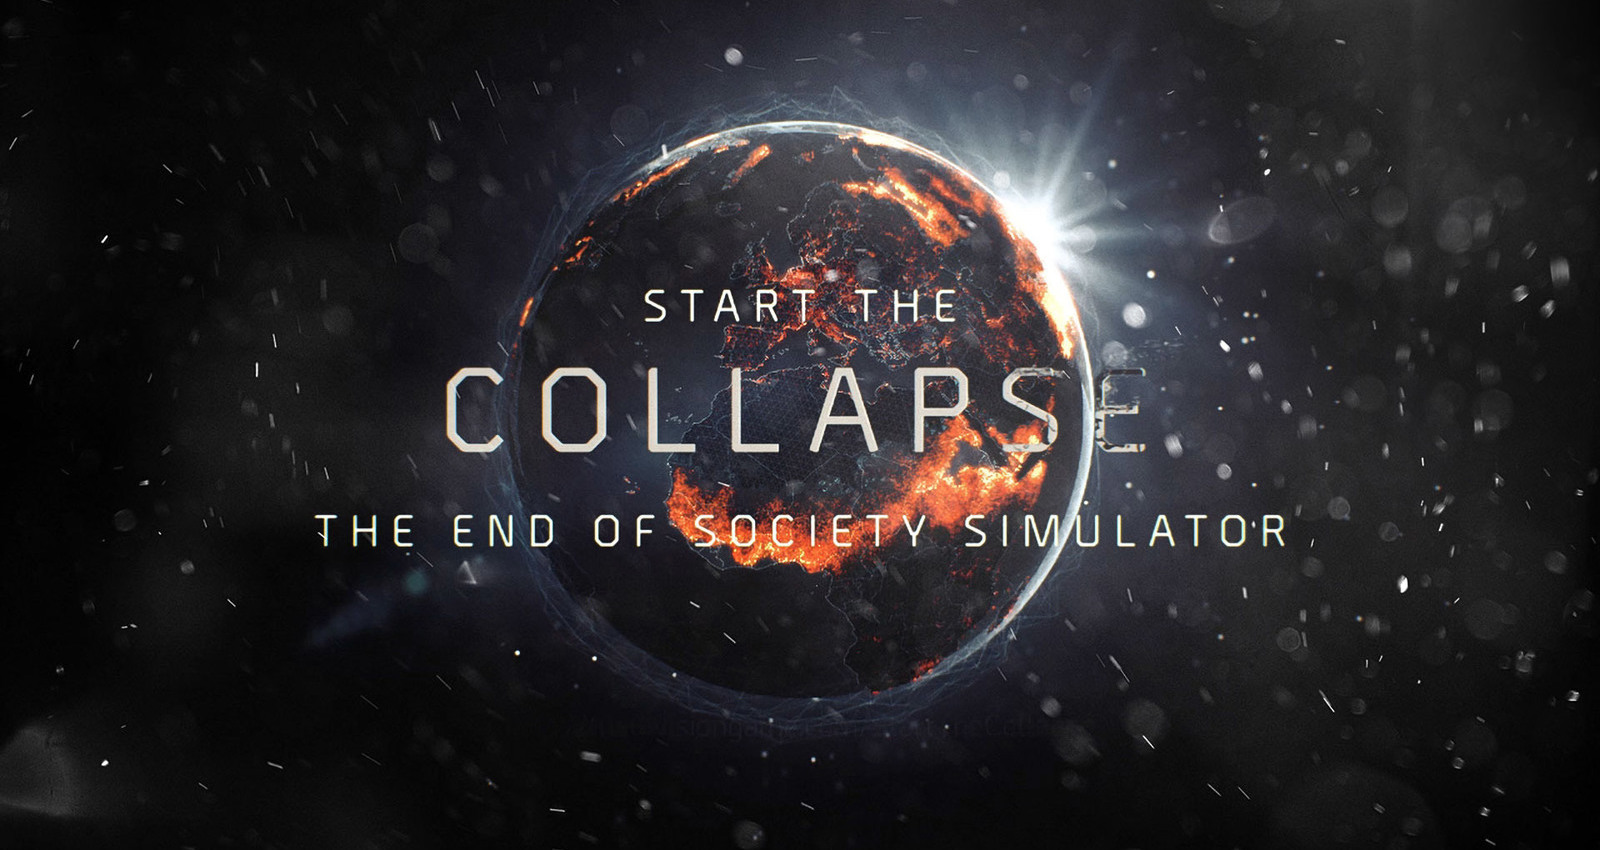 The end of society simulator